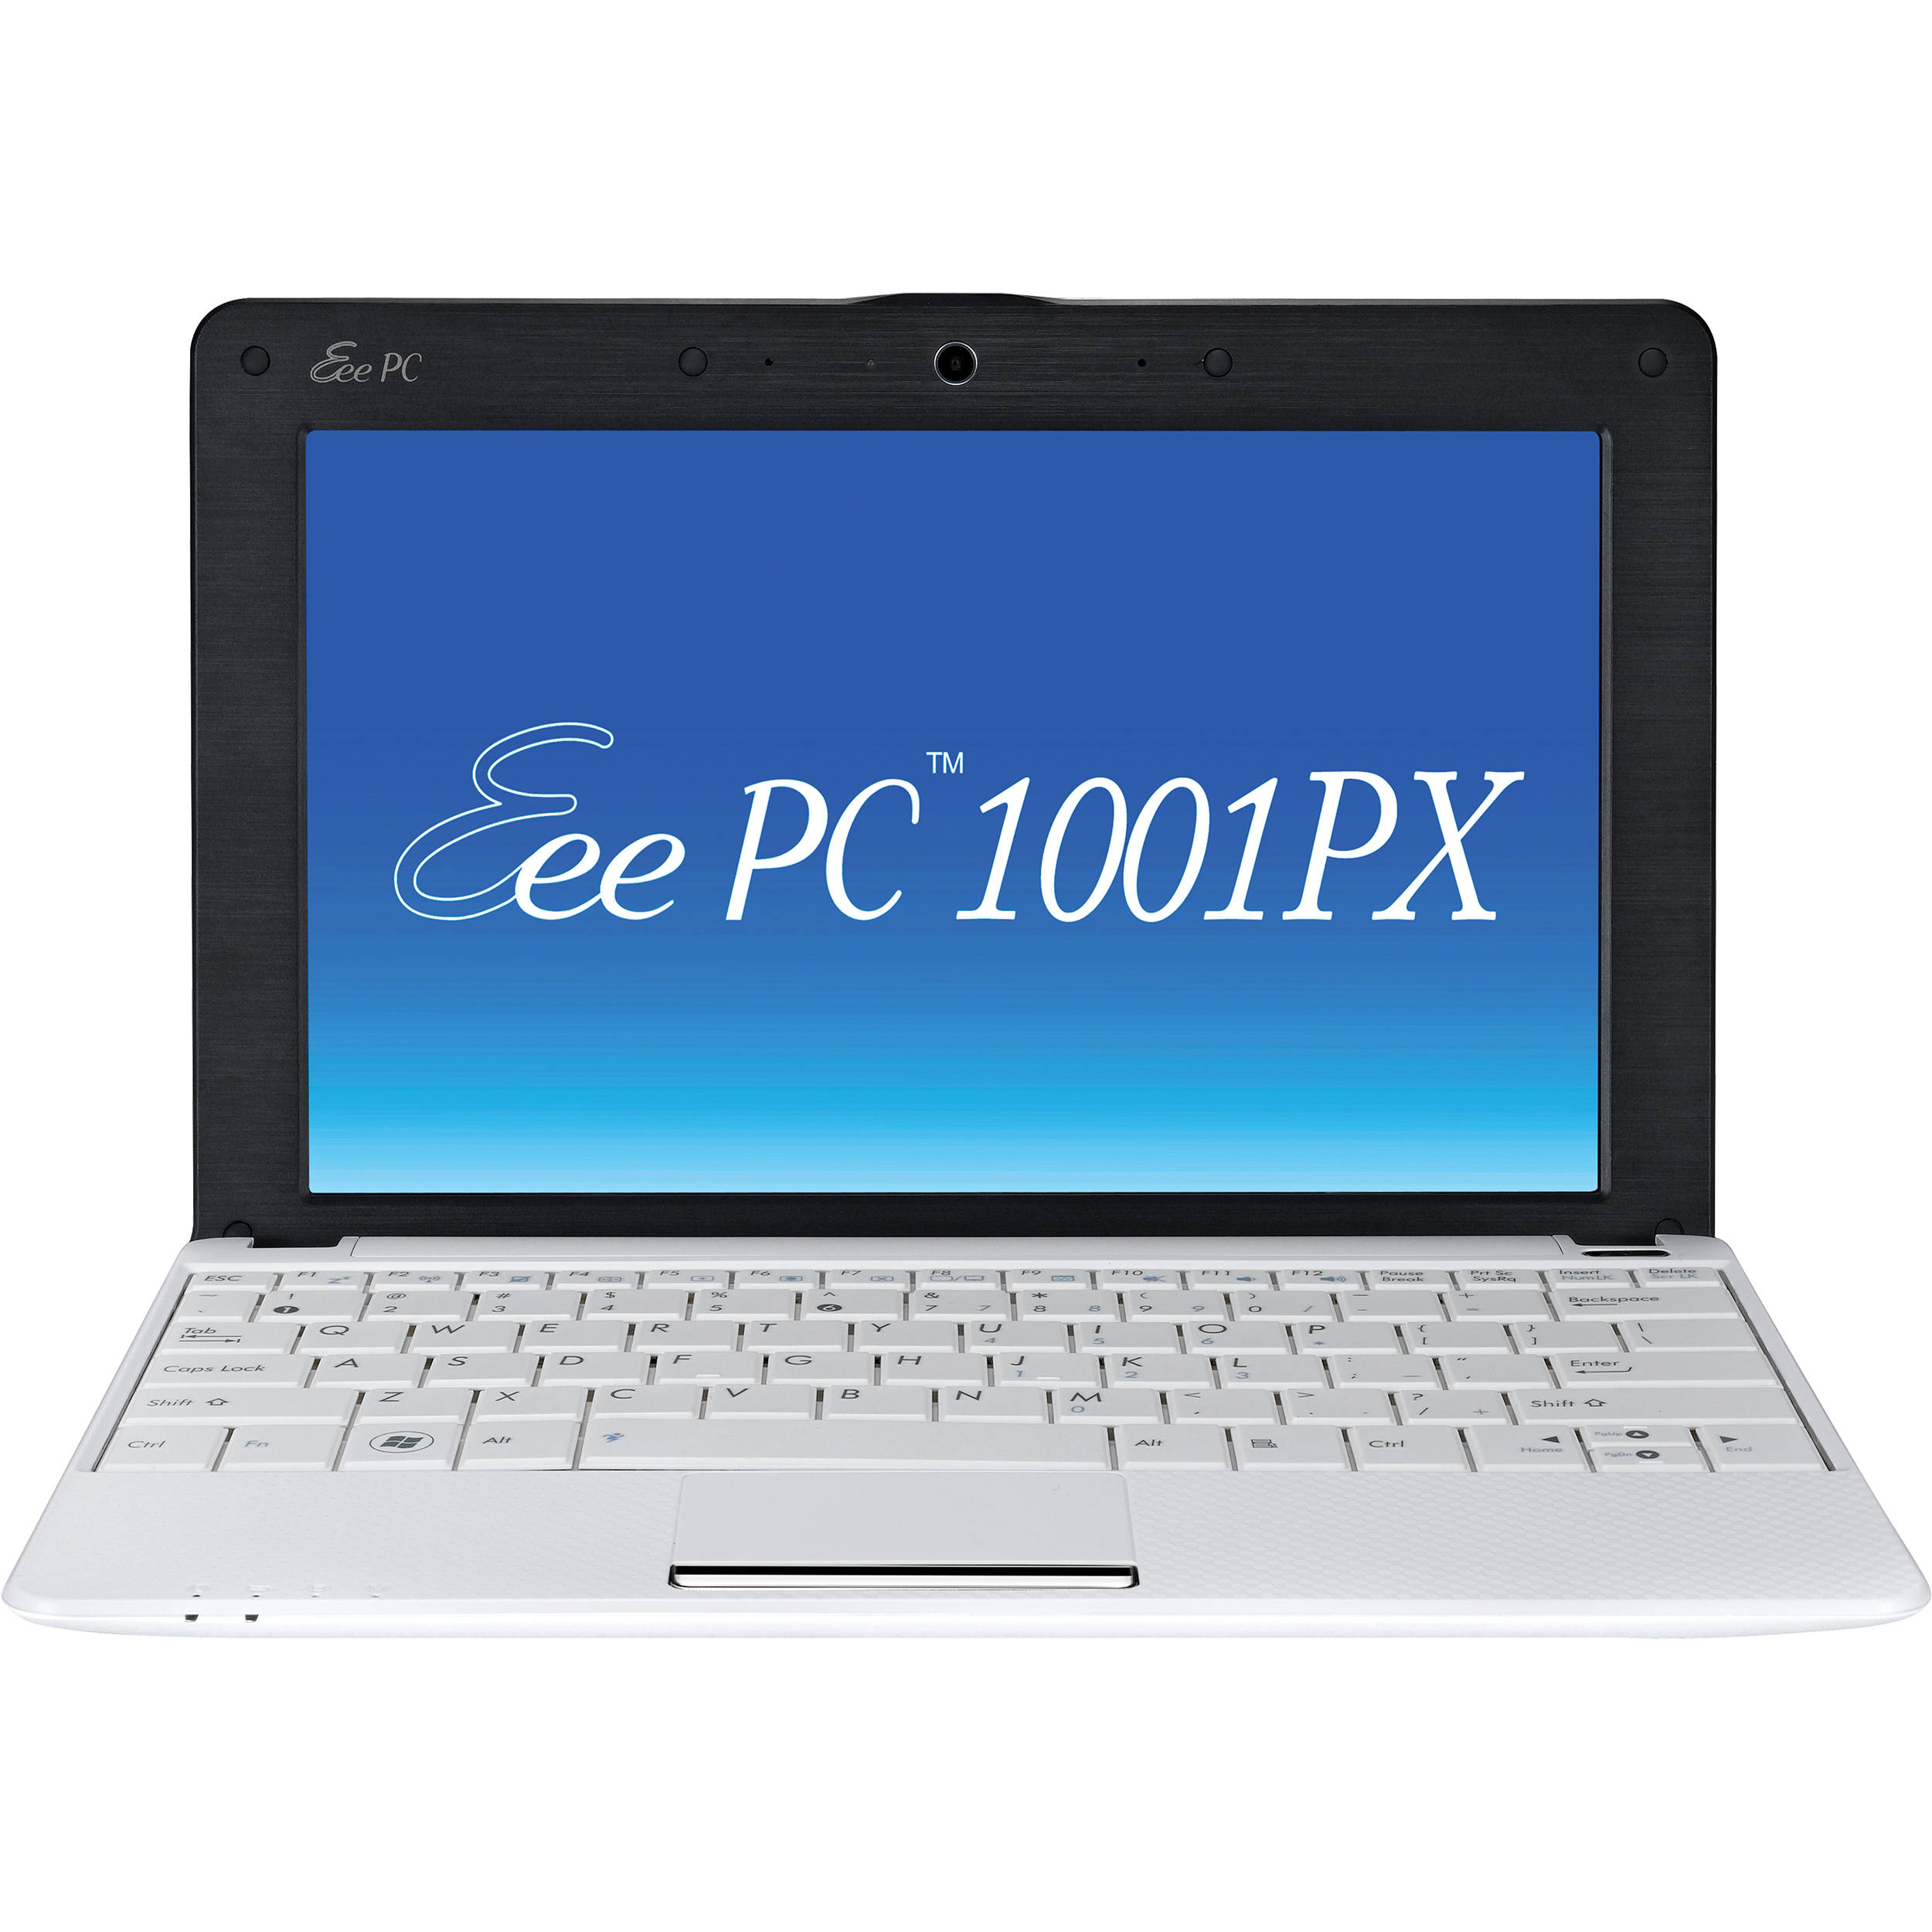 DRIVERS UPDATE: ASUS EEE PC 1001PX GRAPHICS